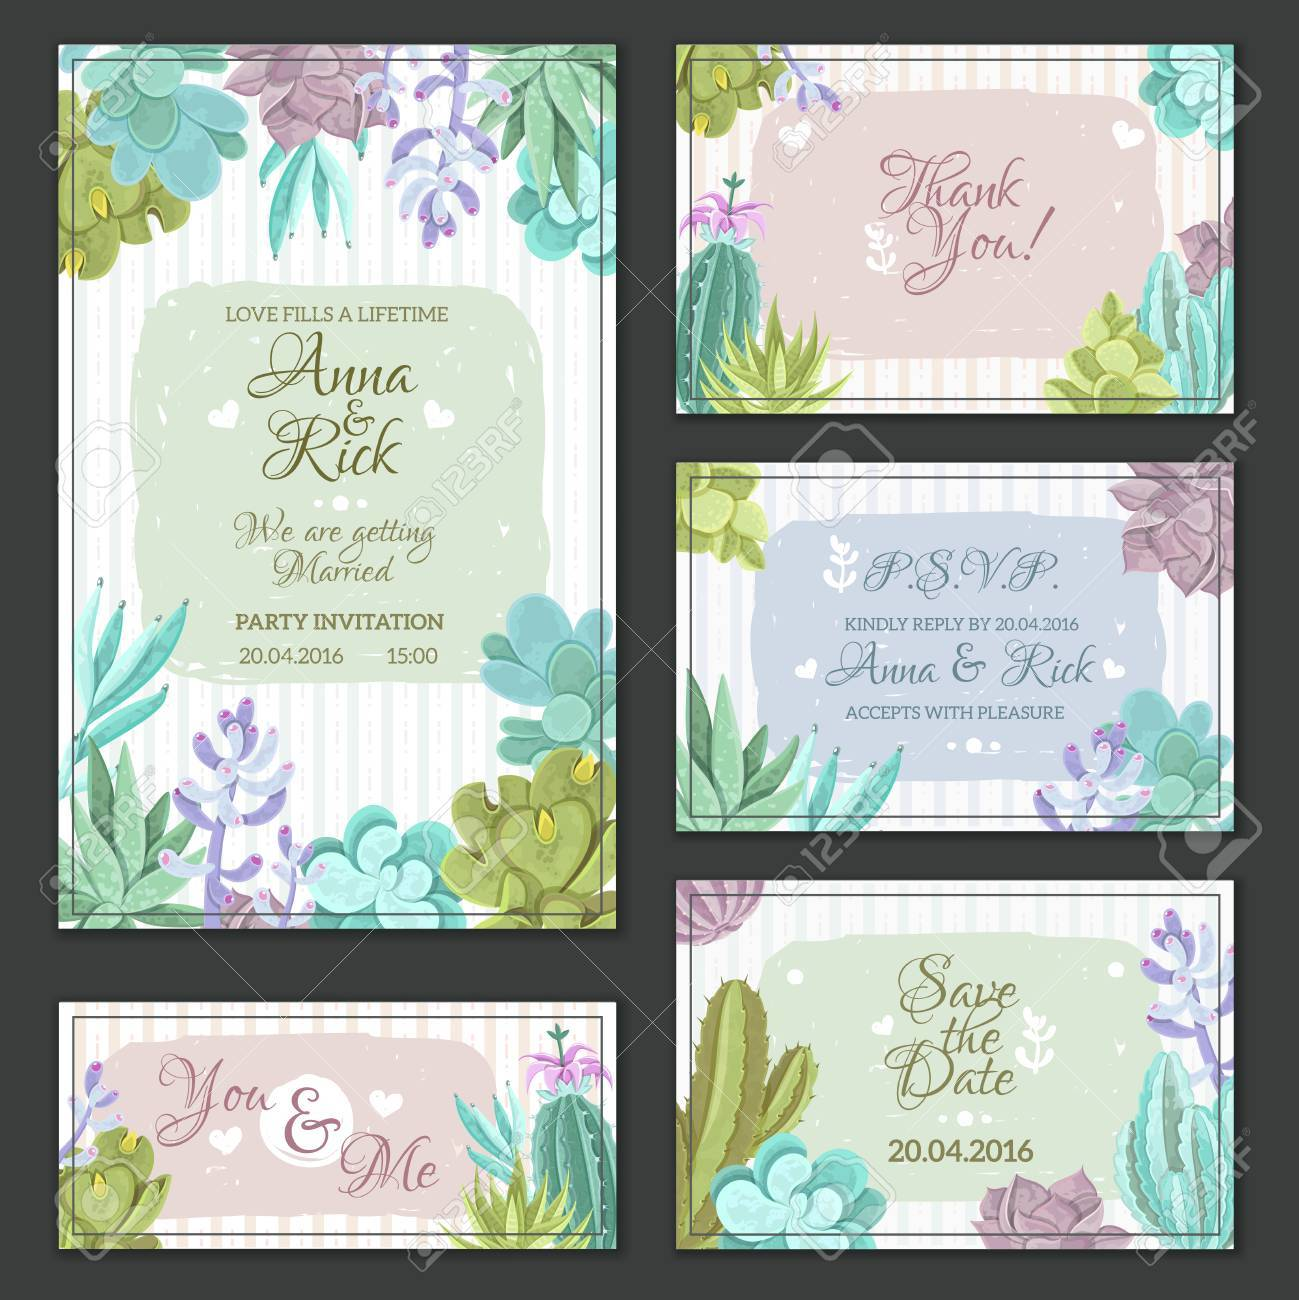 Wedding cards set with a cactus design flat isolated vector illustration - 50340703